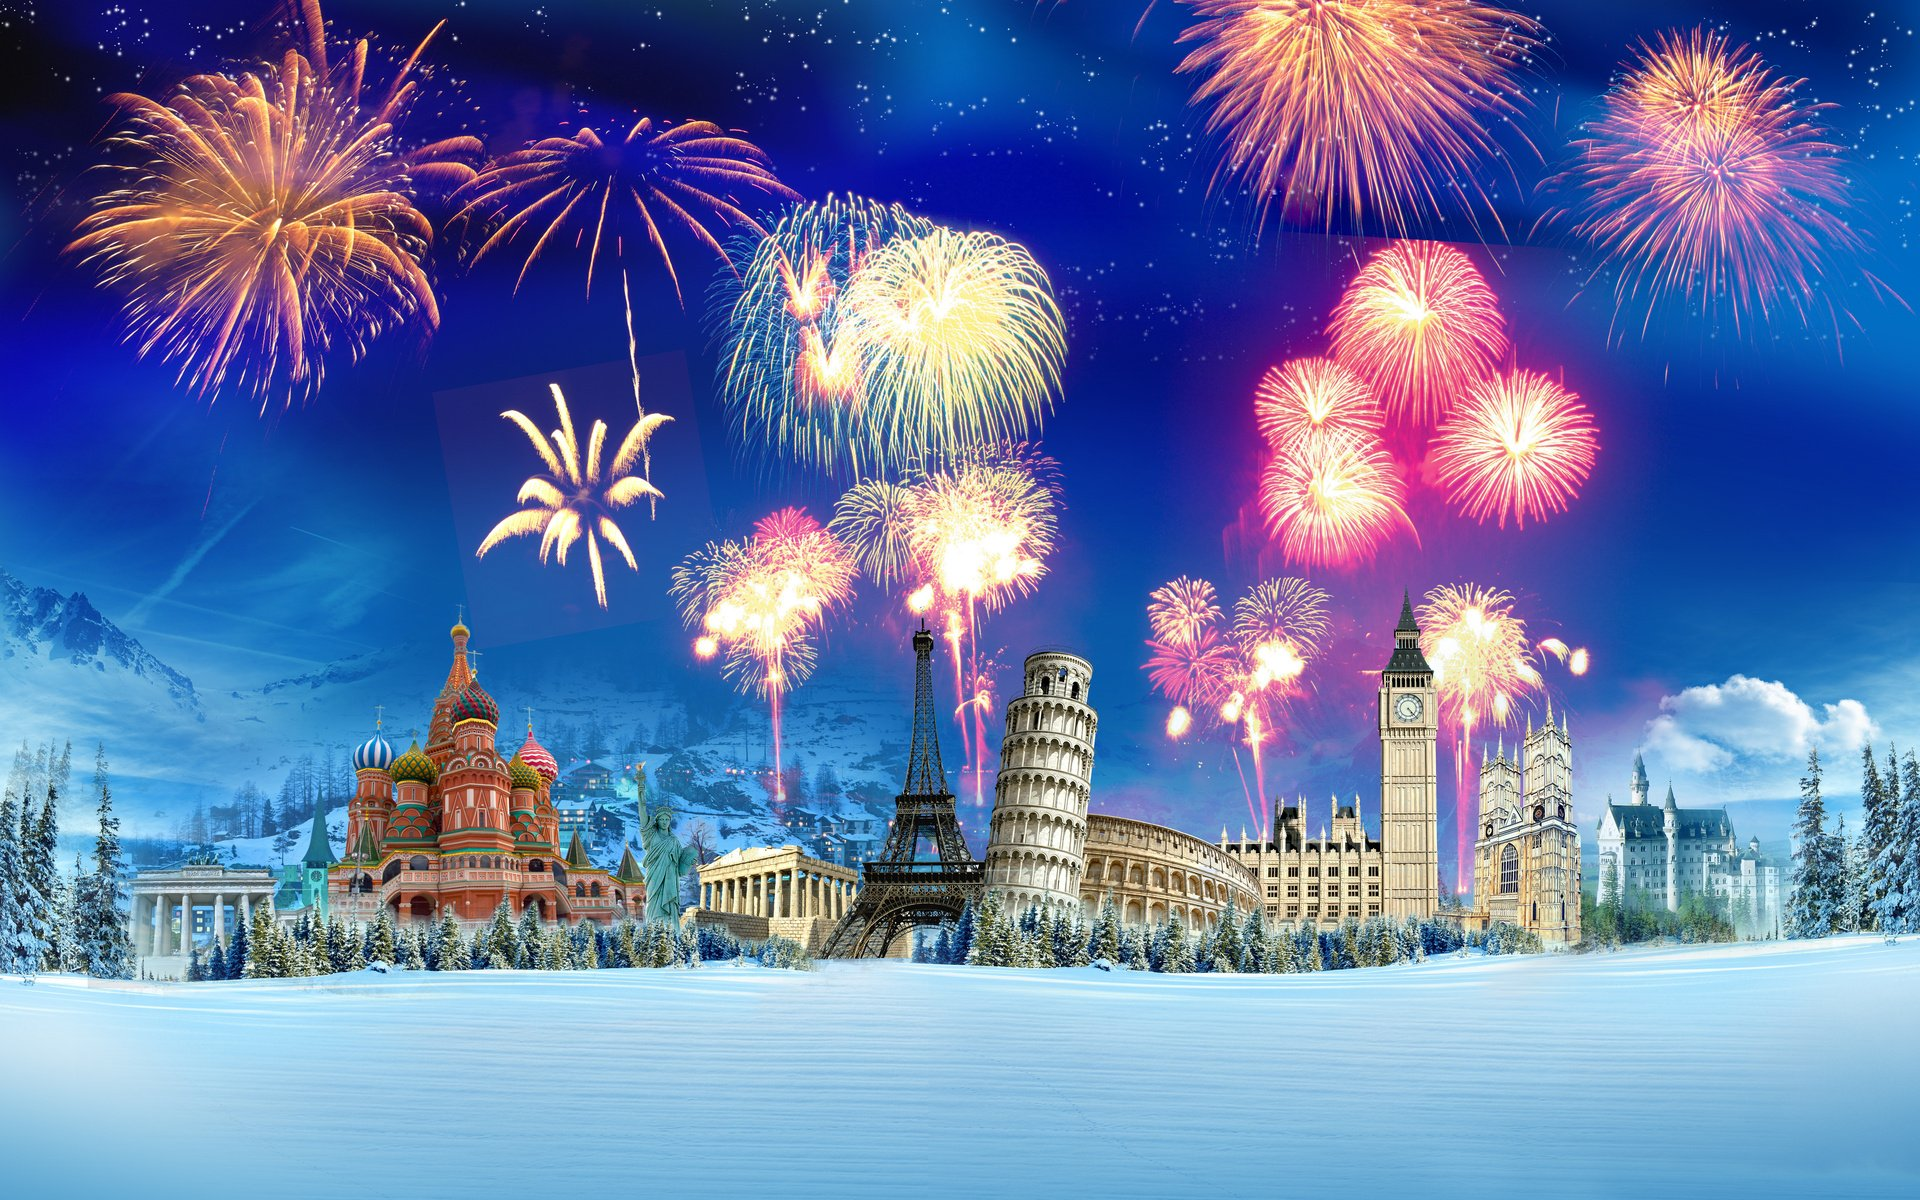 75+] Free New Years Eve Wallpaper on WallpaperSafari